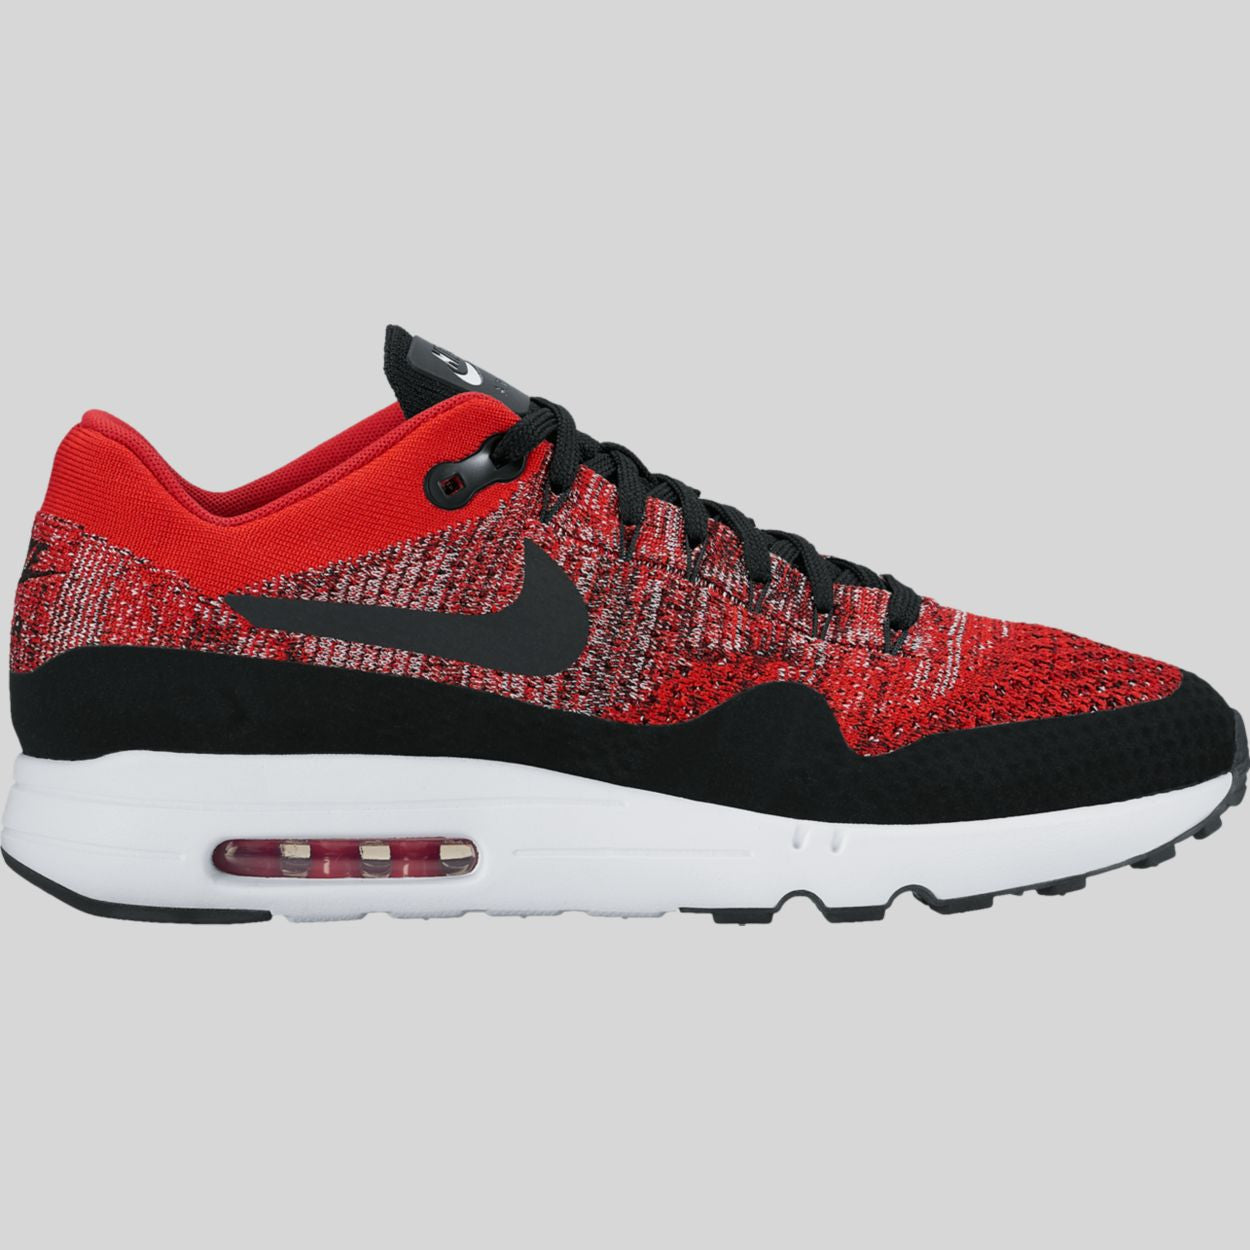 a8519ad53 Nike Air Max 1 Ultra 2.0 Flyknit University Red Black (875942-600 ...